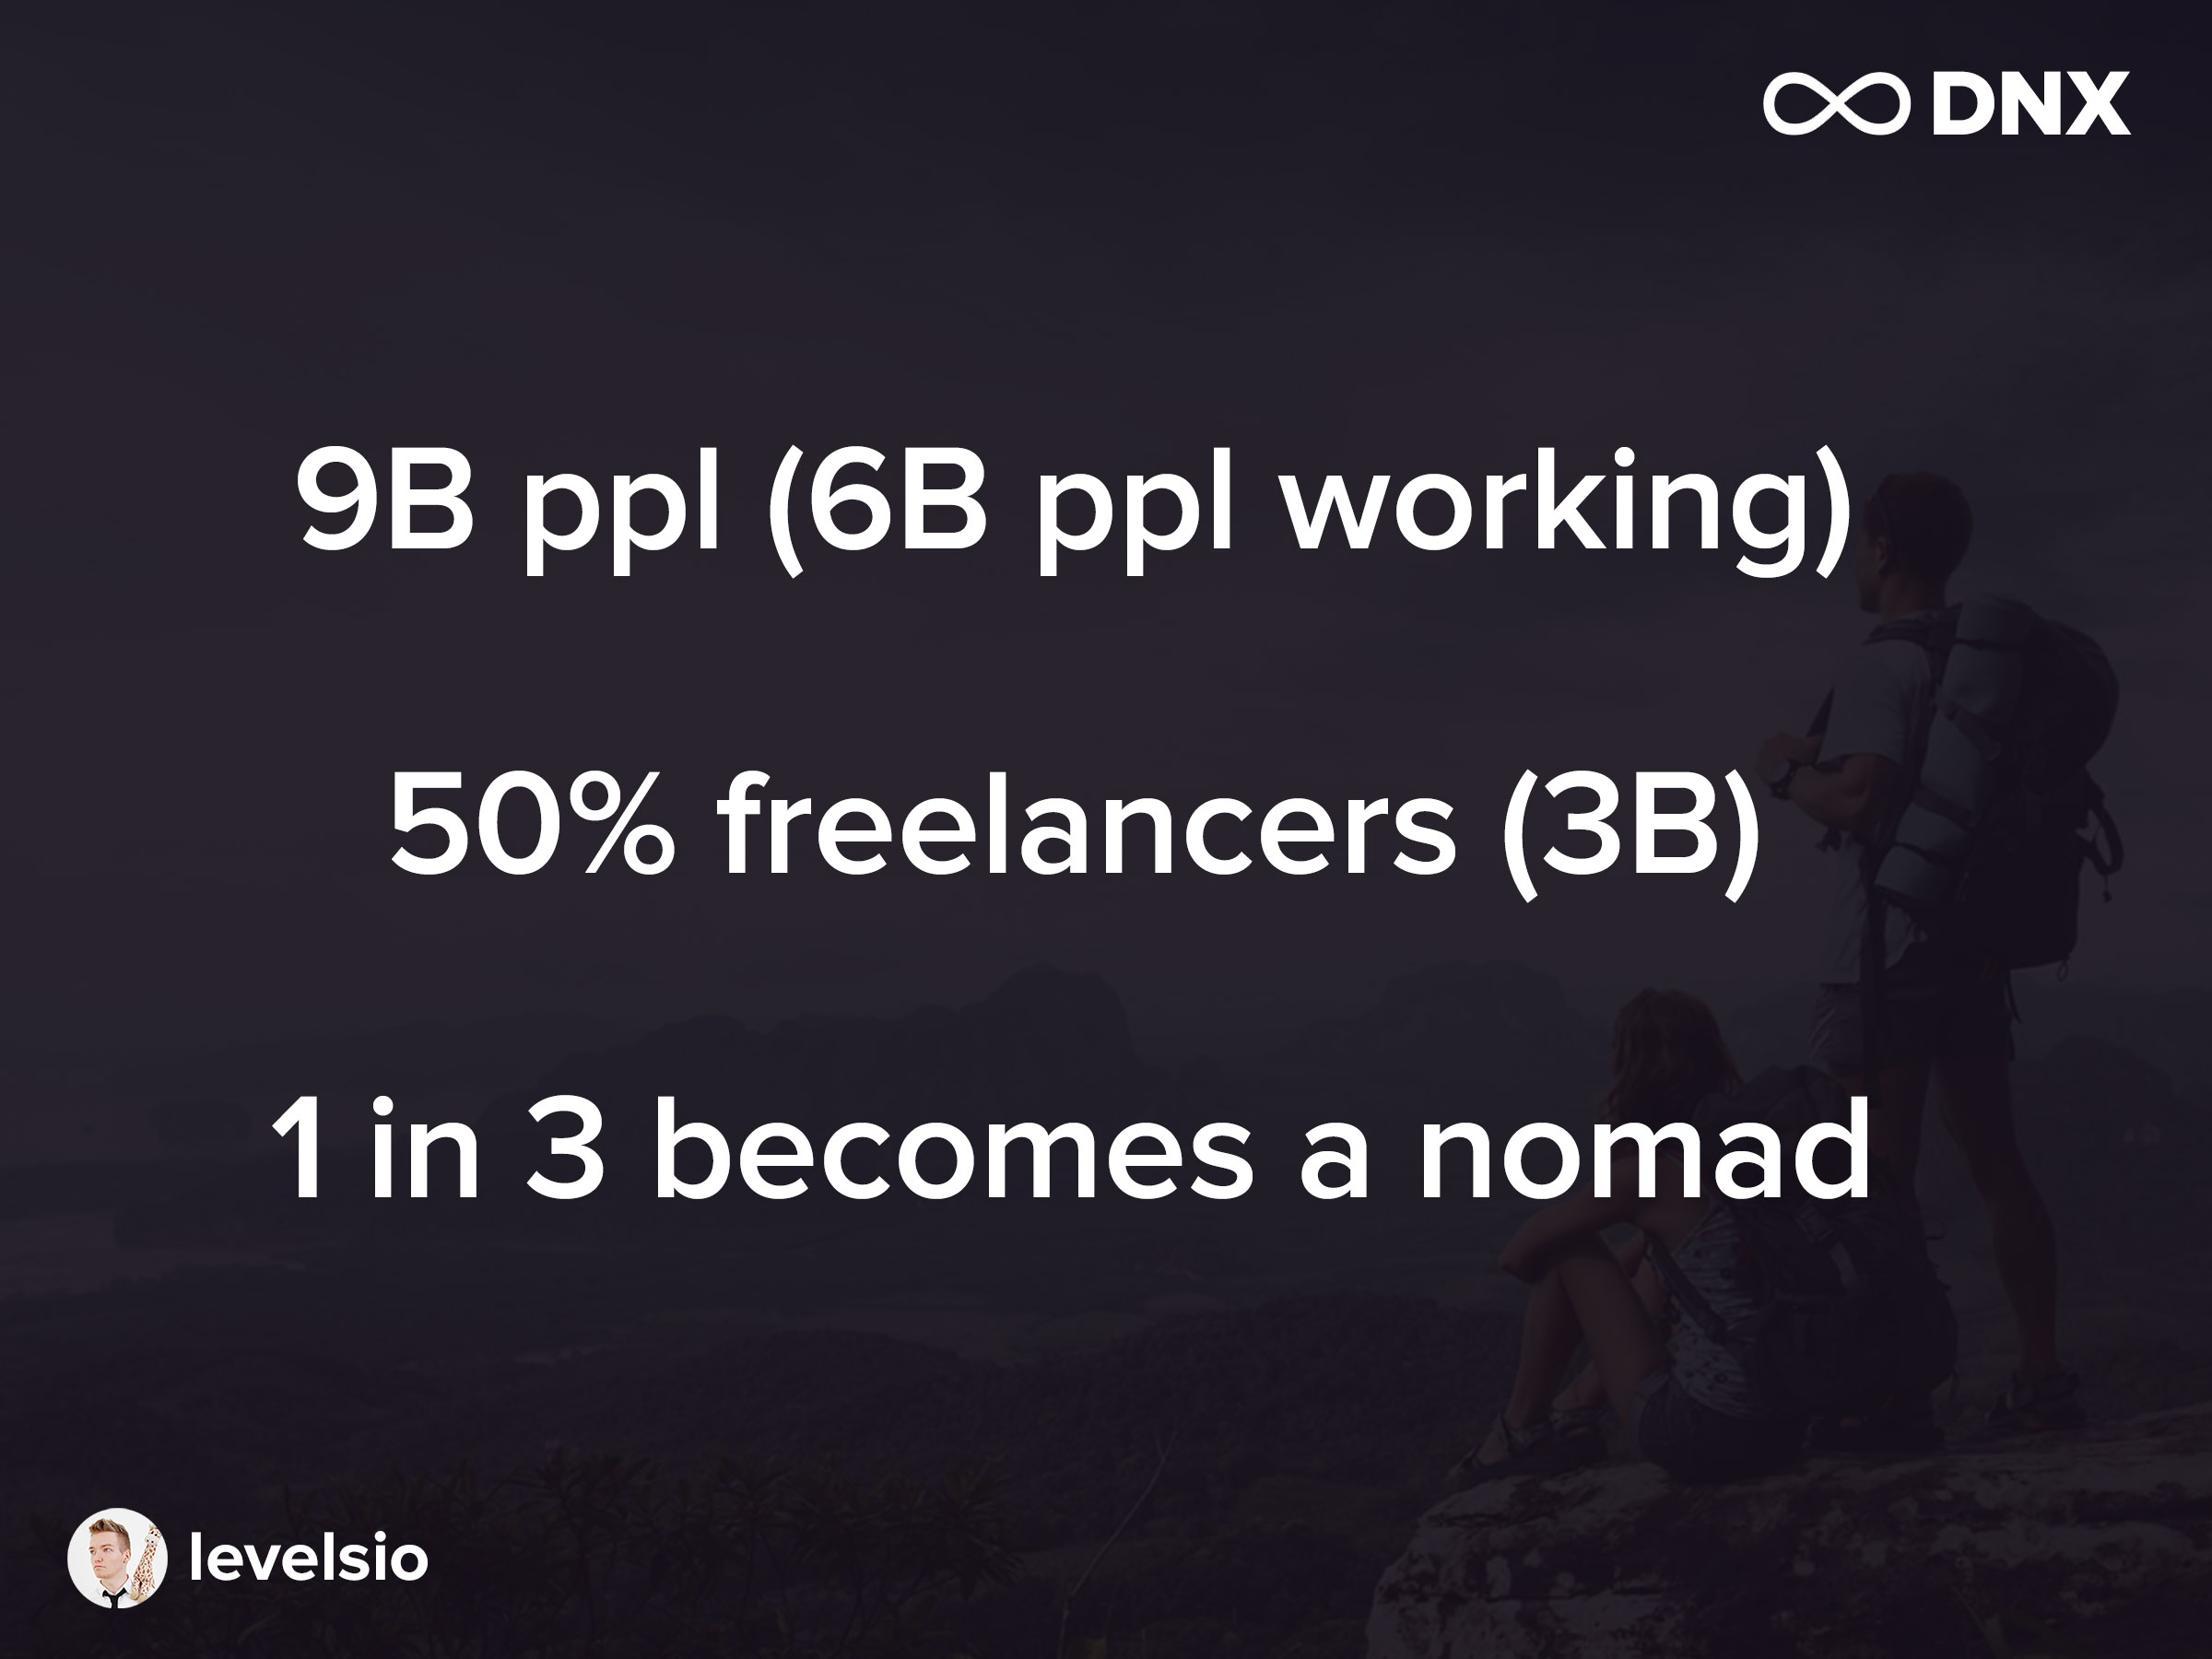 DNX Freelancers and Nomads